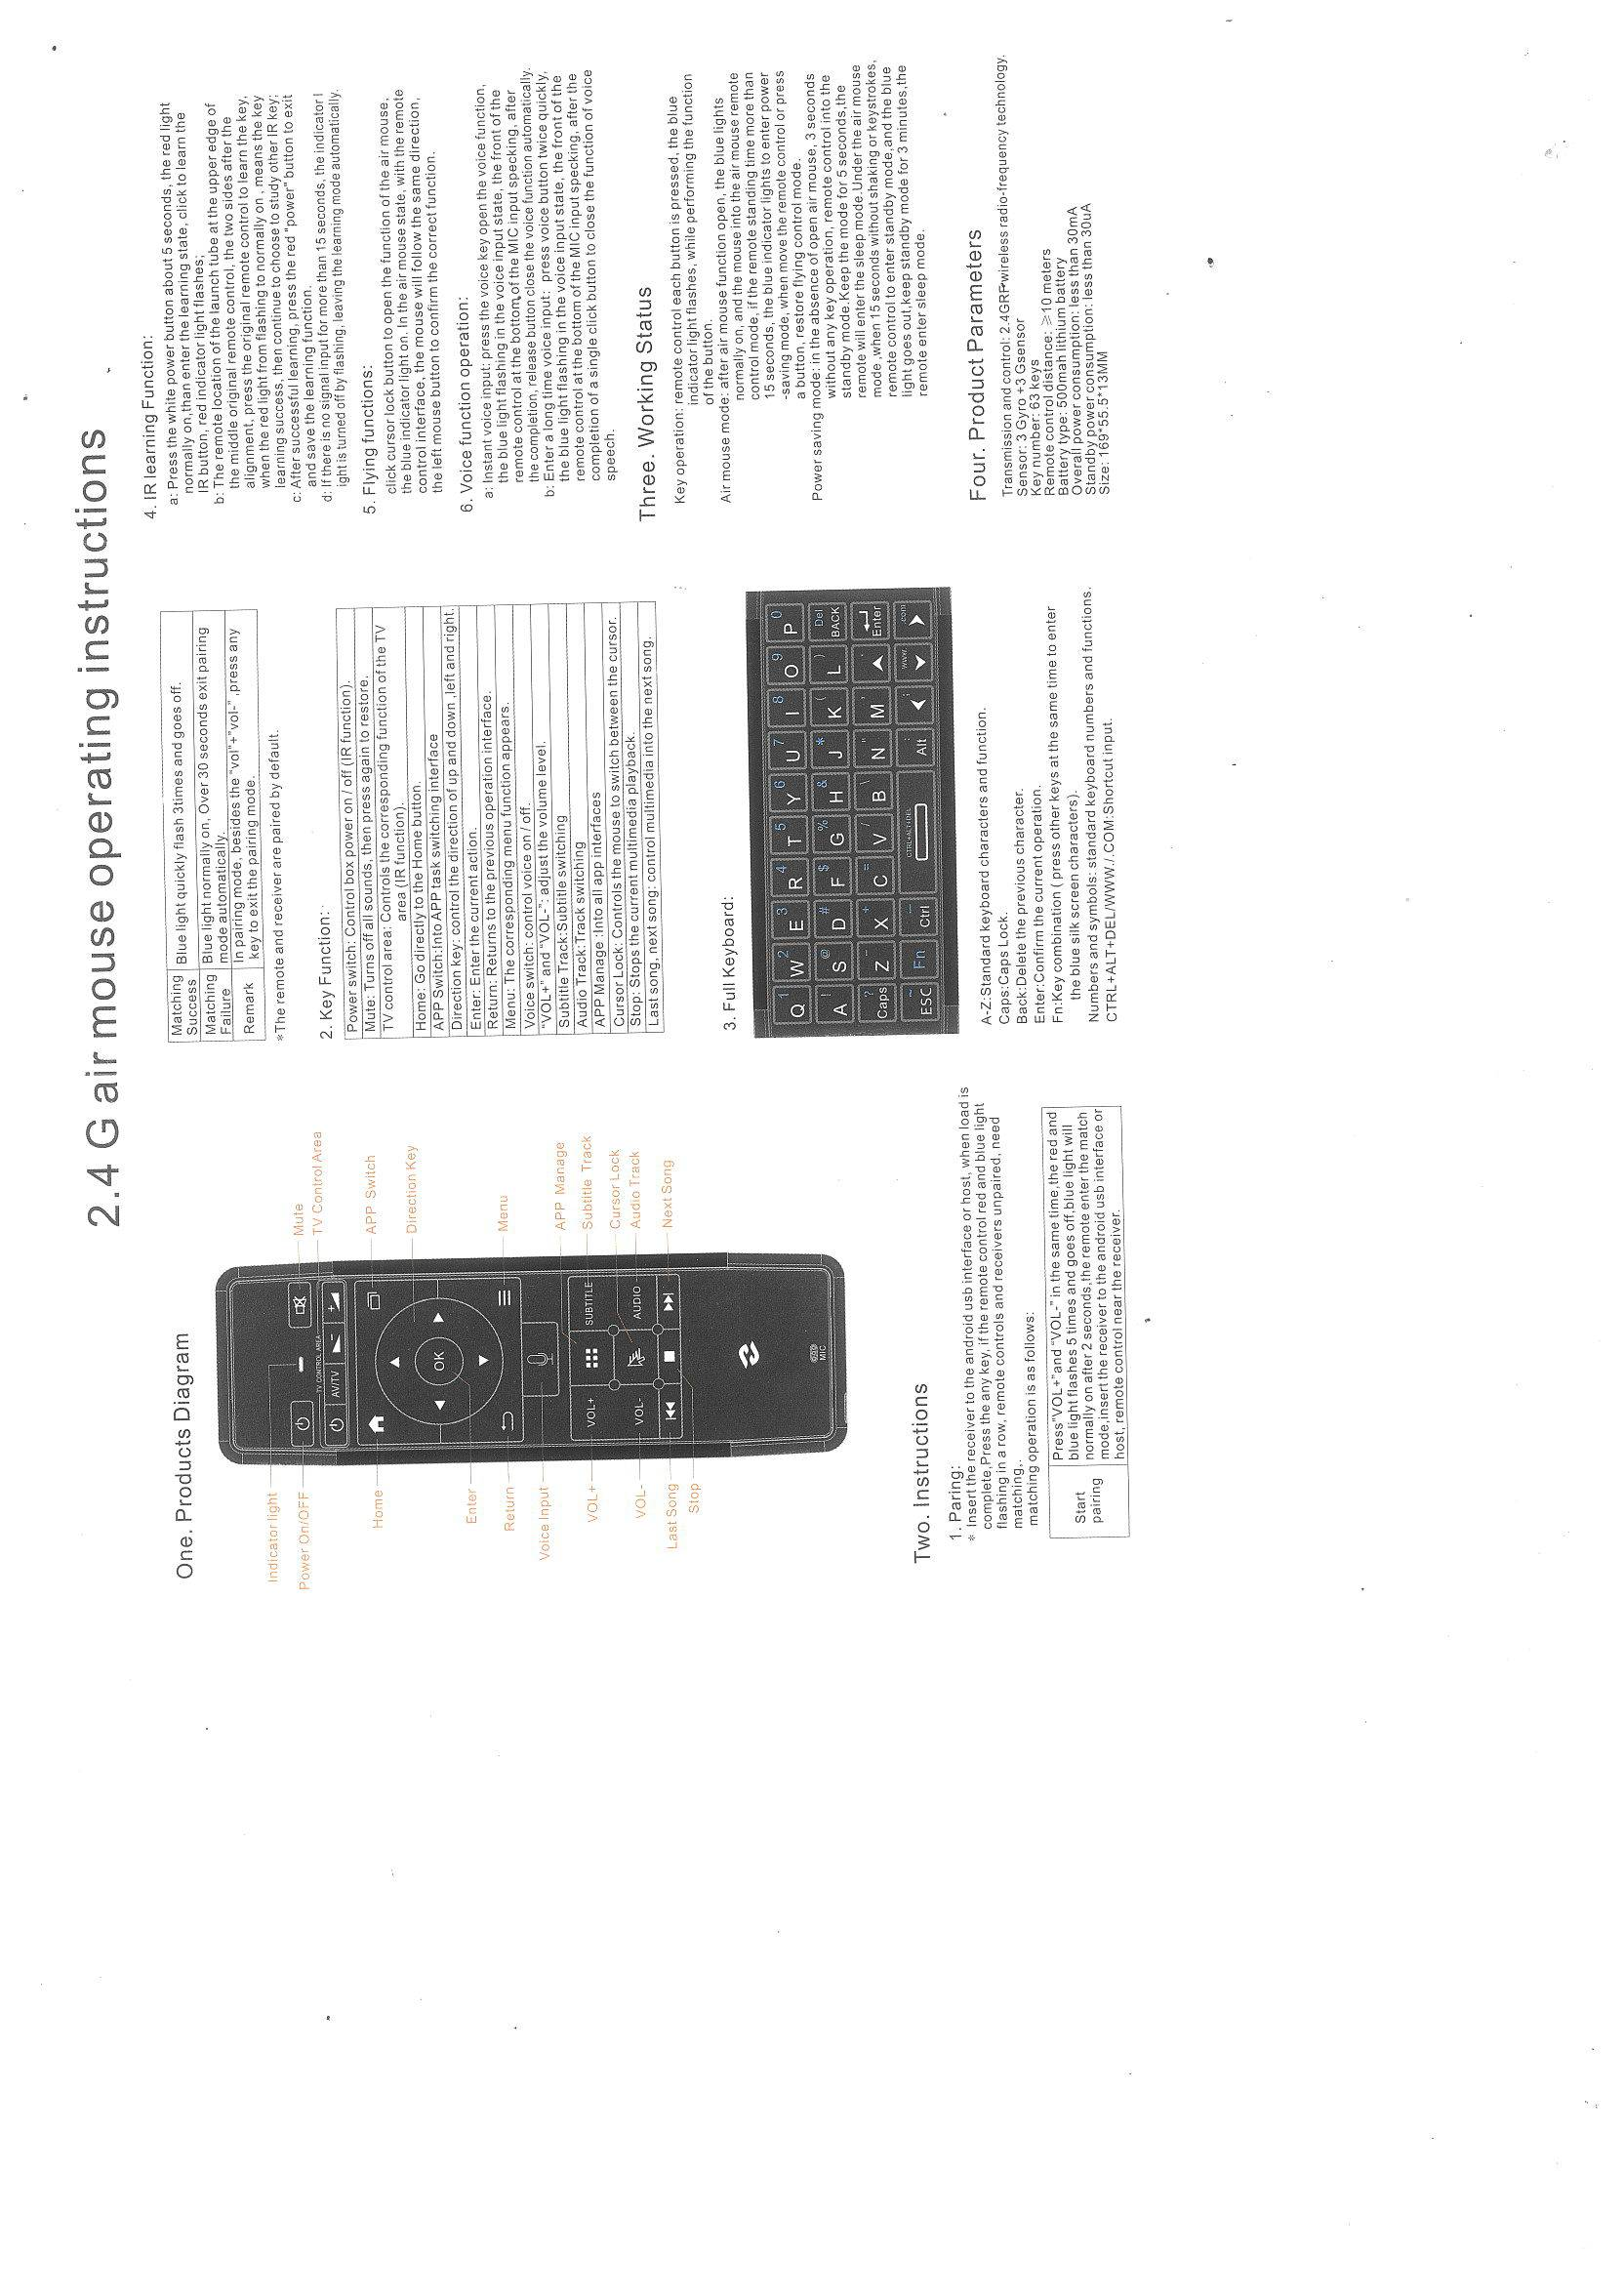 onn optical mouse driver download m241